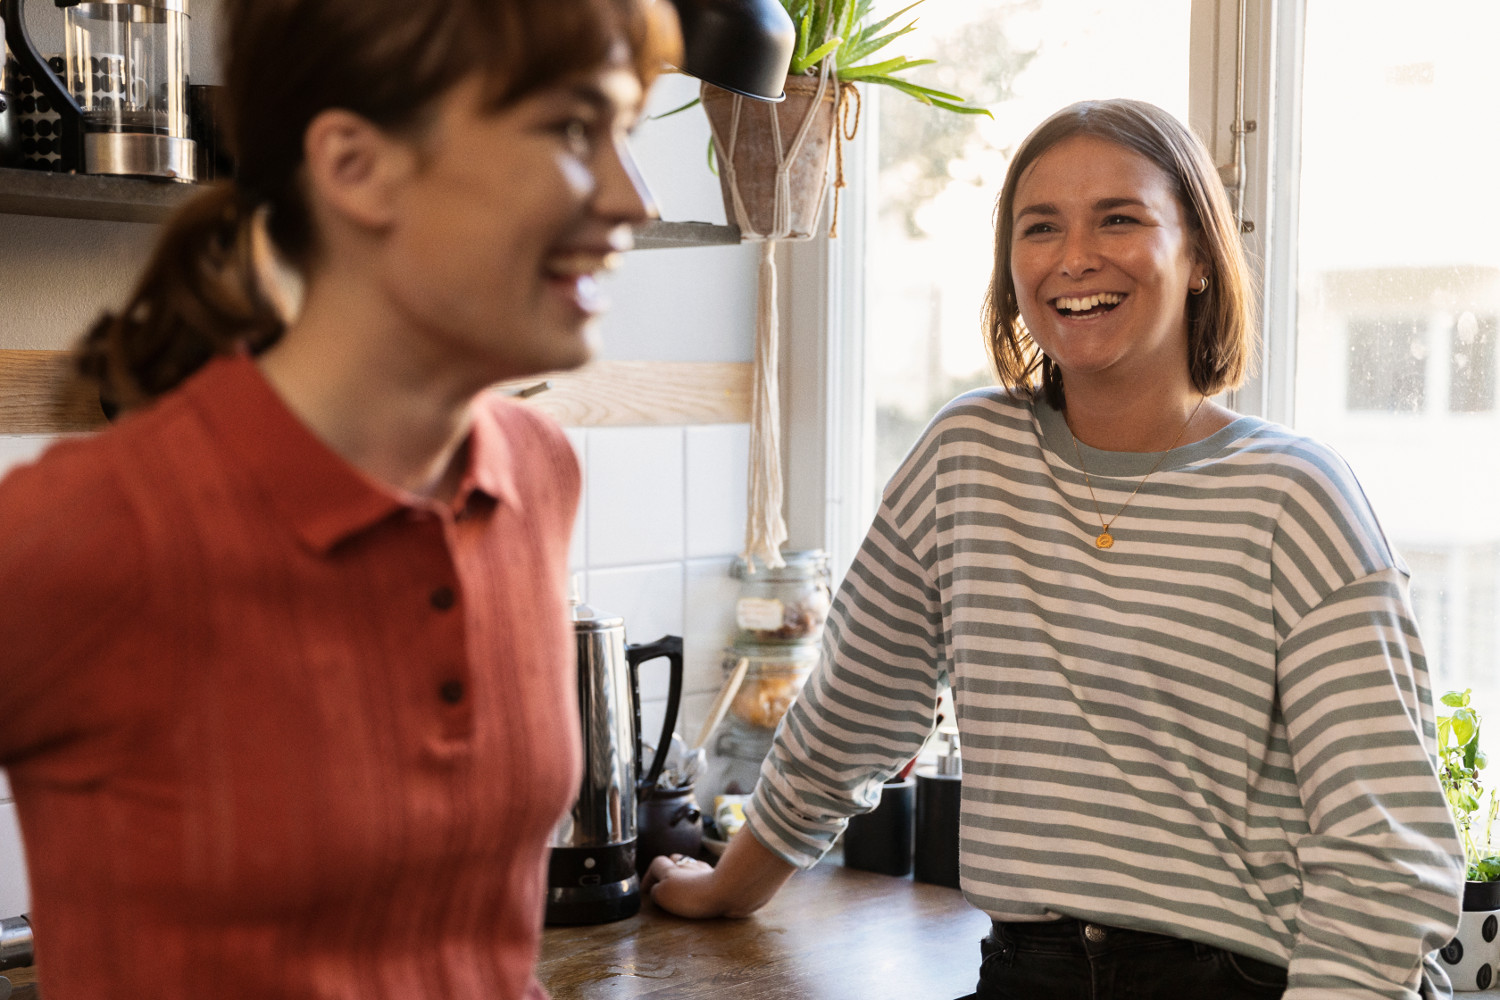 An image of a couple laughing